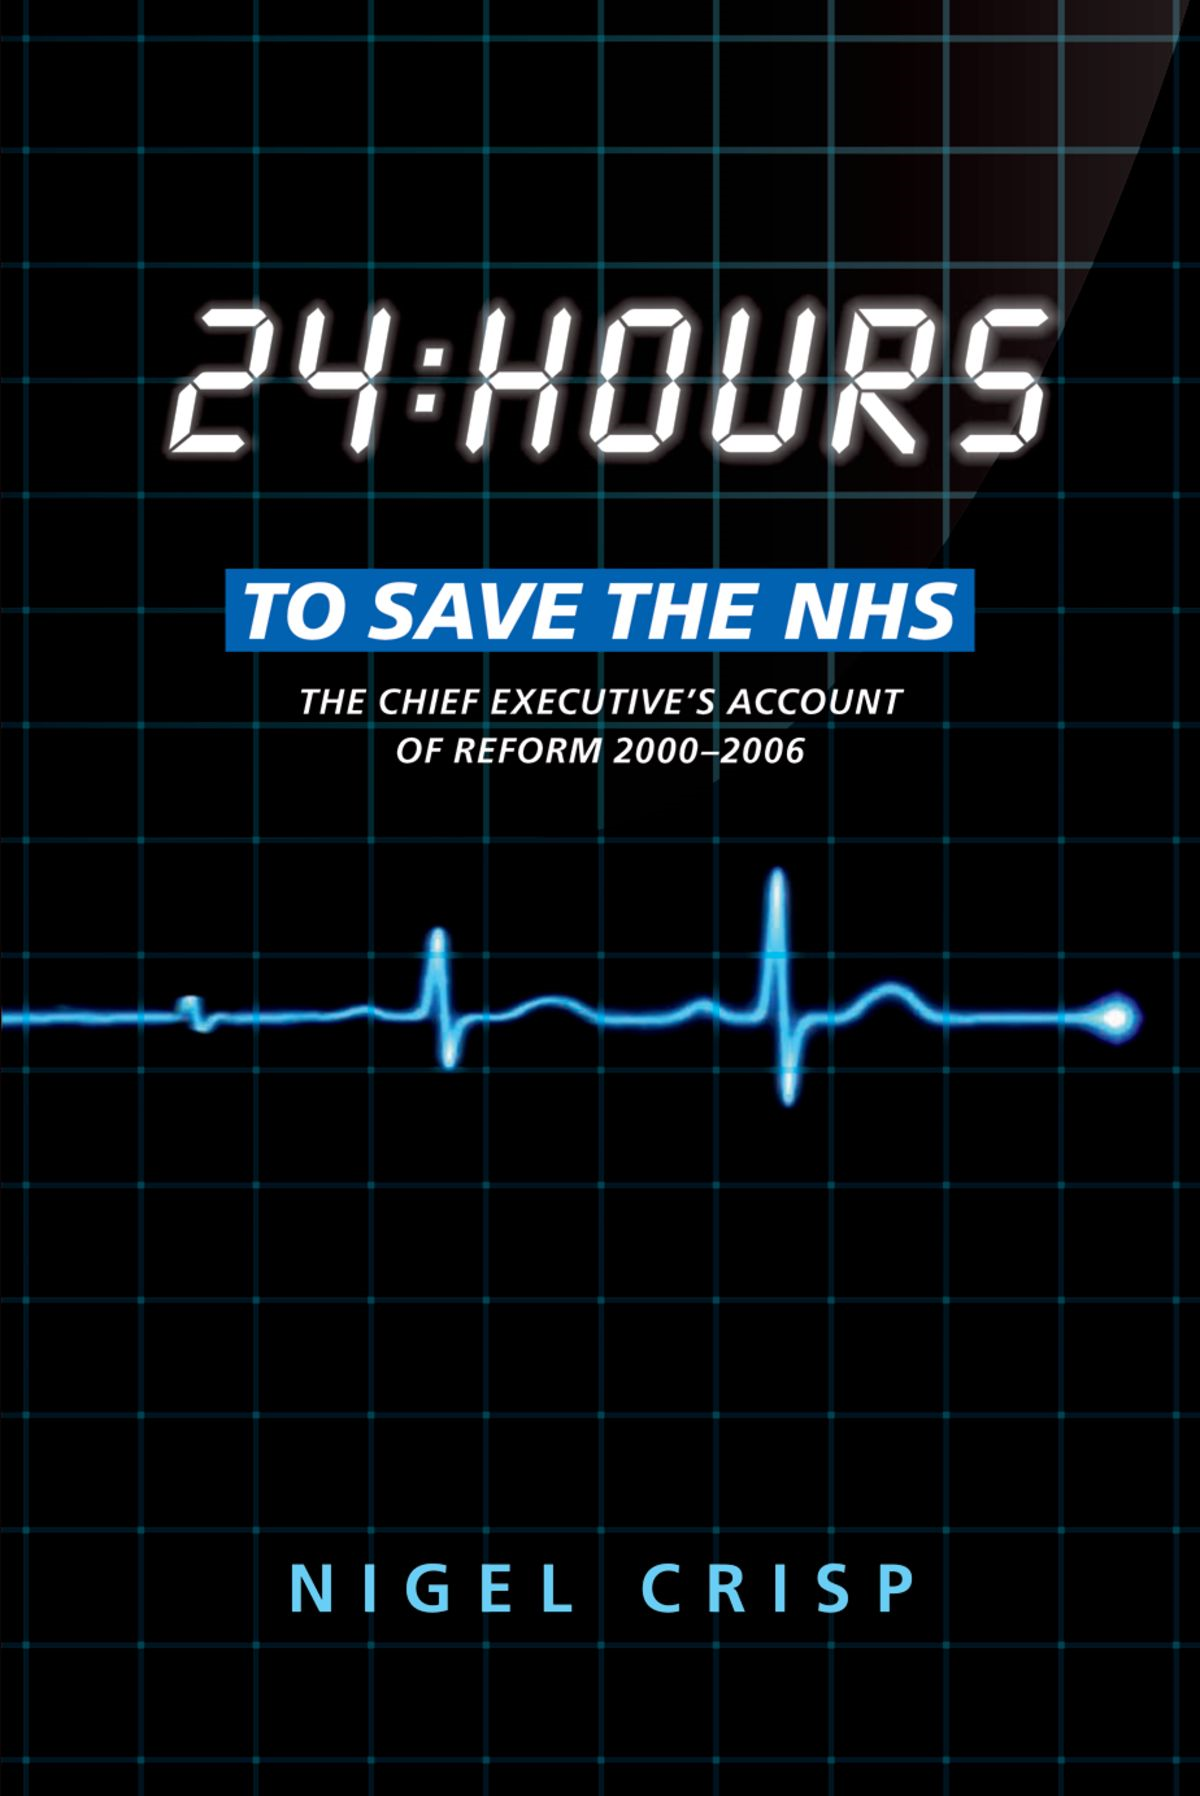 24 hours to save the NHS:The Chief Executive's account of reform 2000 to 2006